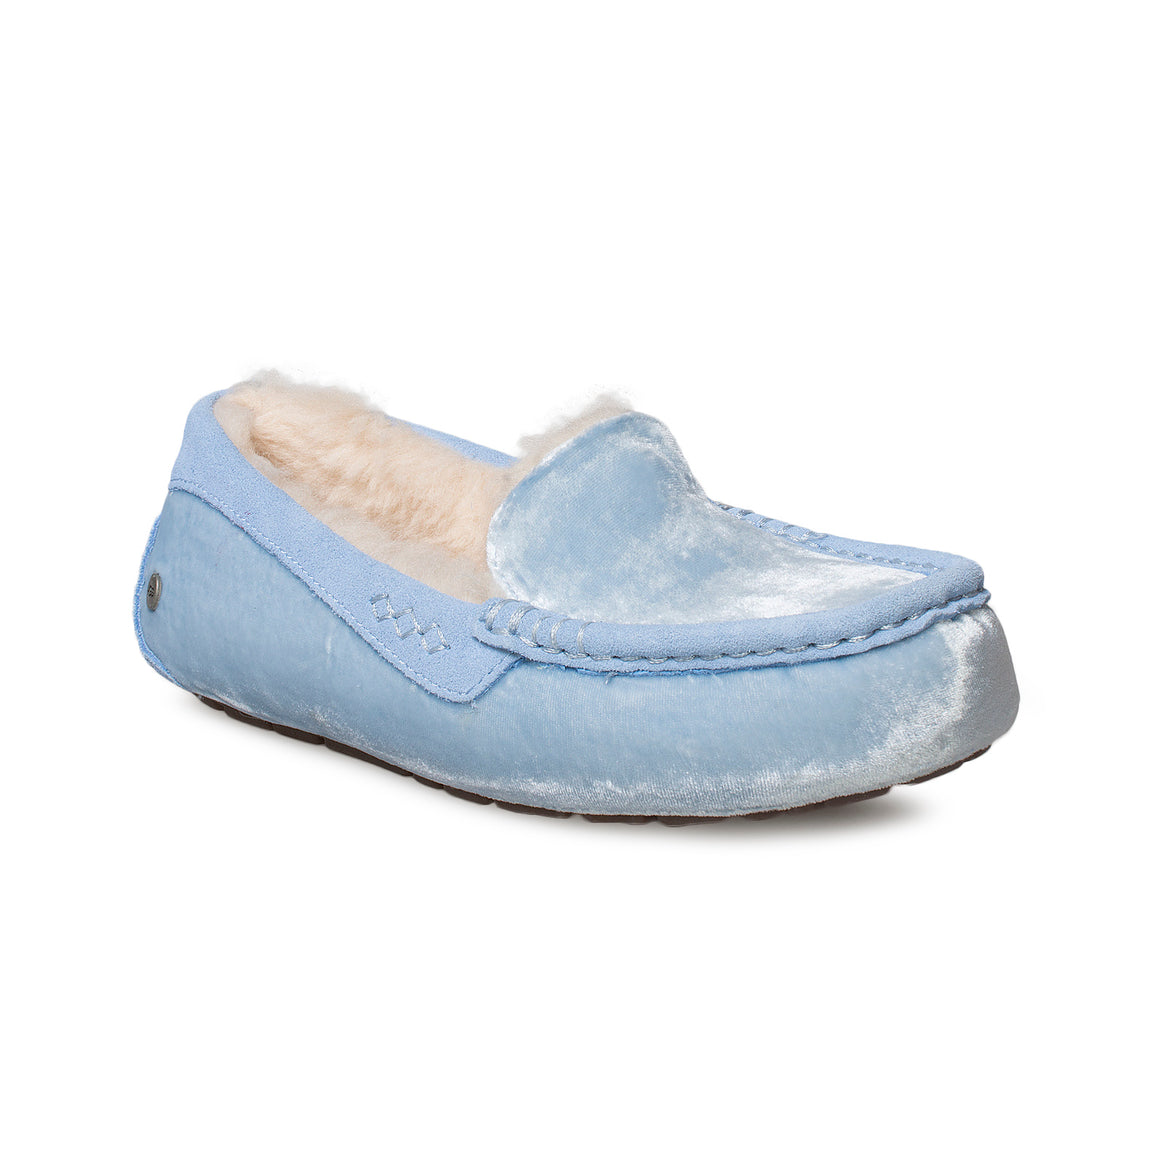 UGG Ansley Velvet Whisper Blue Slippers - Women's